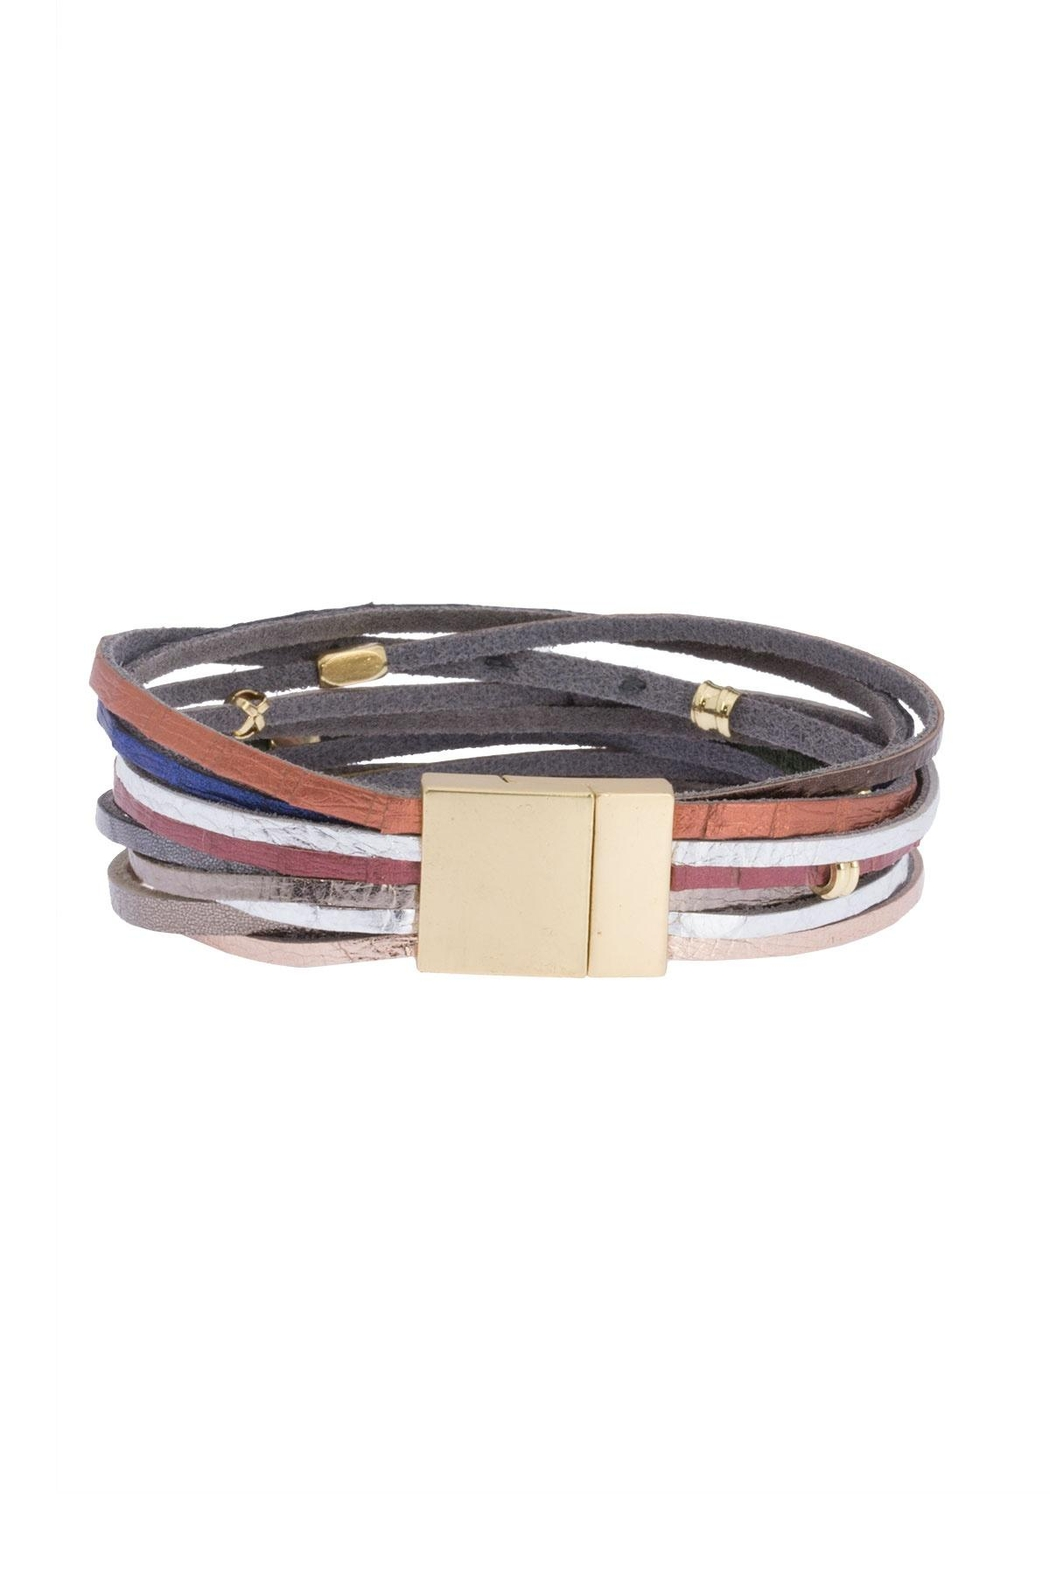 Saachi Easy Breezy Leather Bracelet - Back Cropped Image